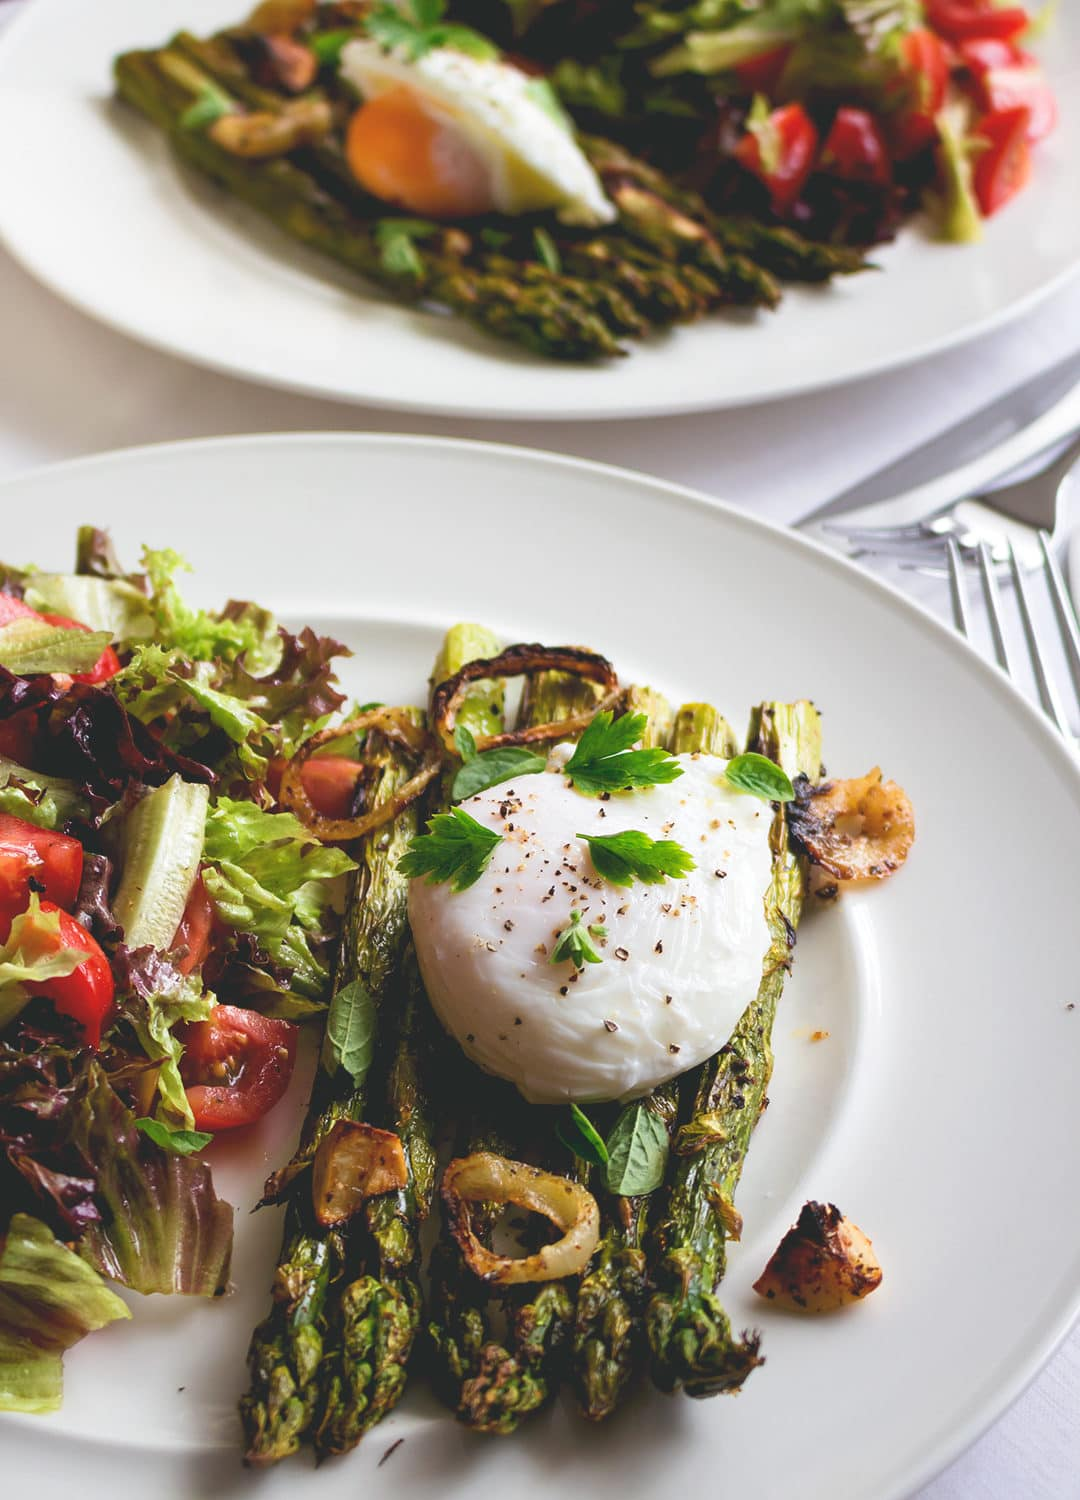 Grilled Asparagus with Poached Egg and Greens - delicious savory breakfast or bruch when you're craving something fancier. Healthy and actually really easy to make! We love this recipe! | thehealthfulideas.com